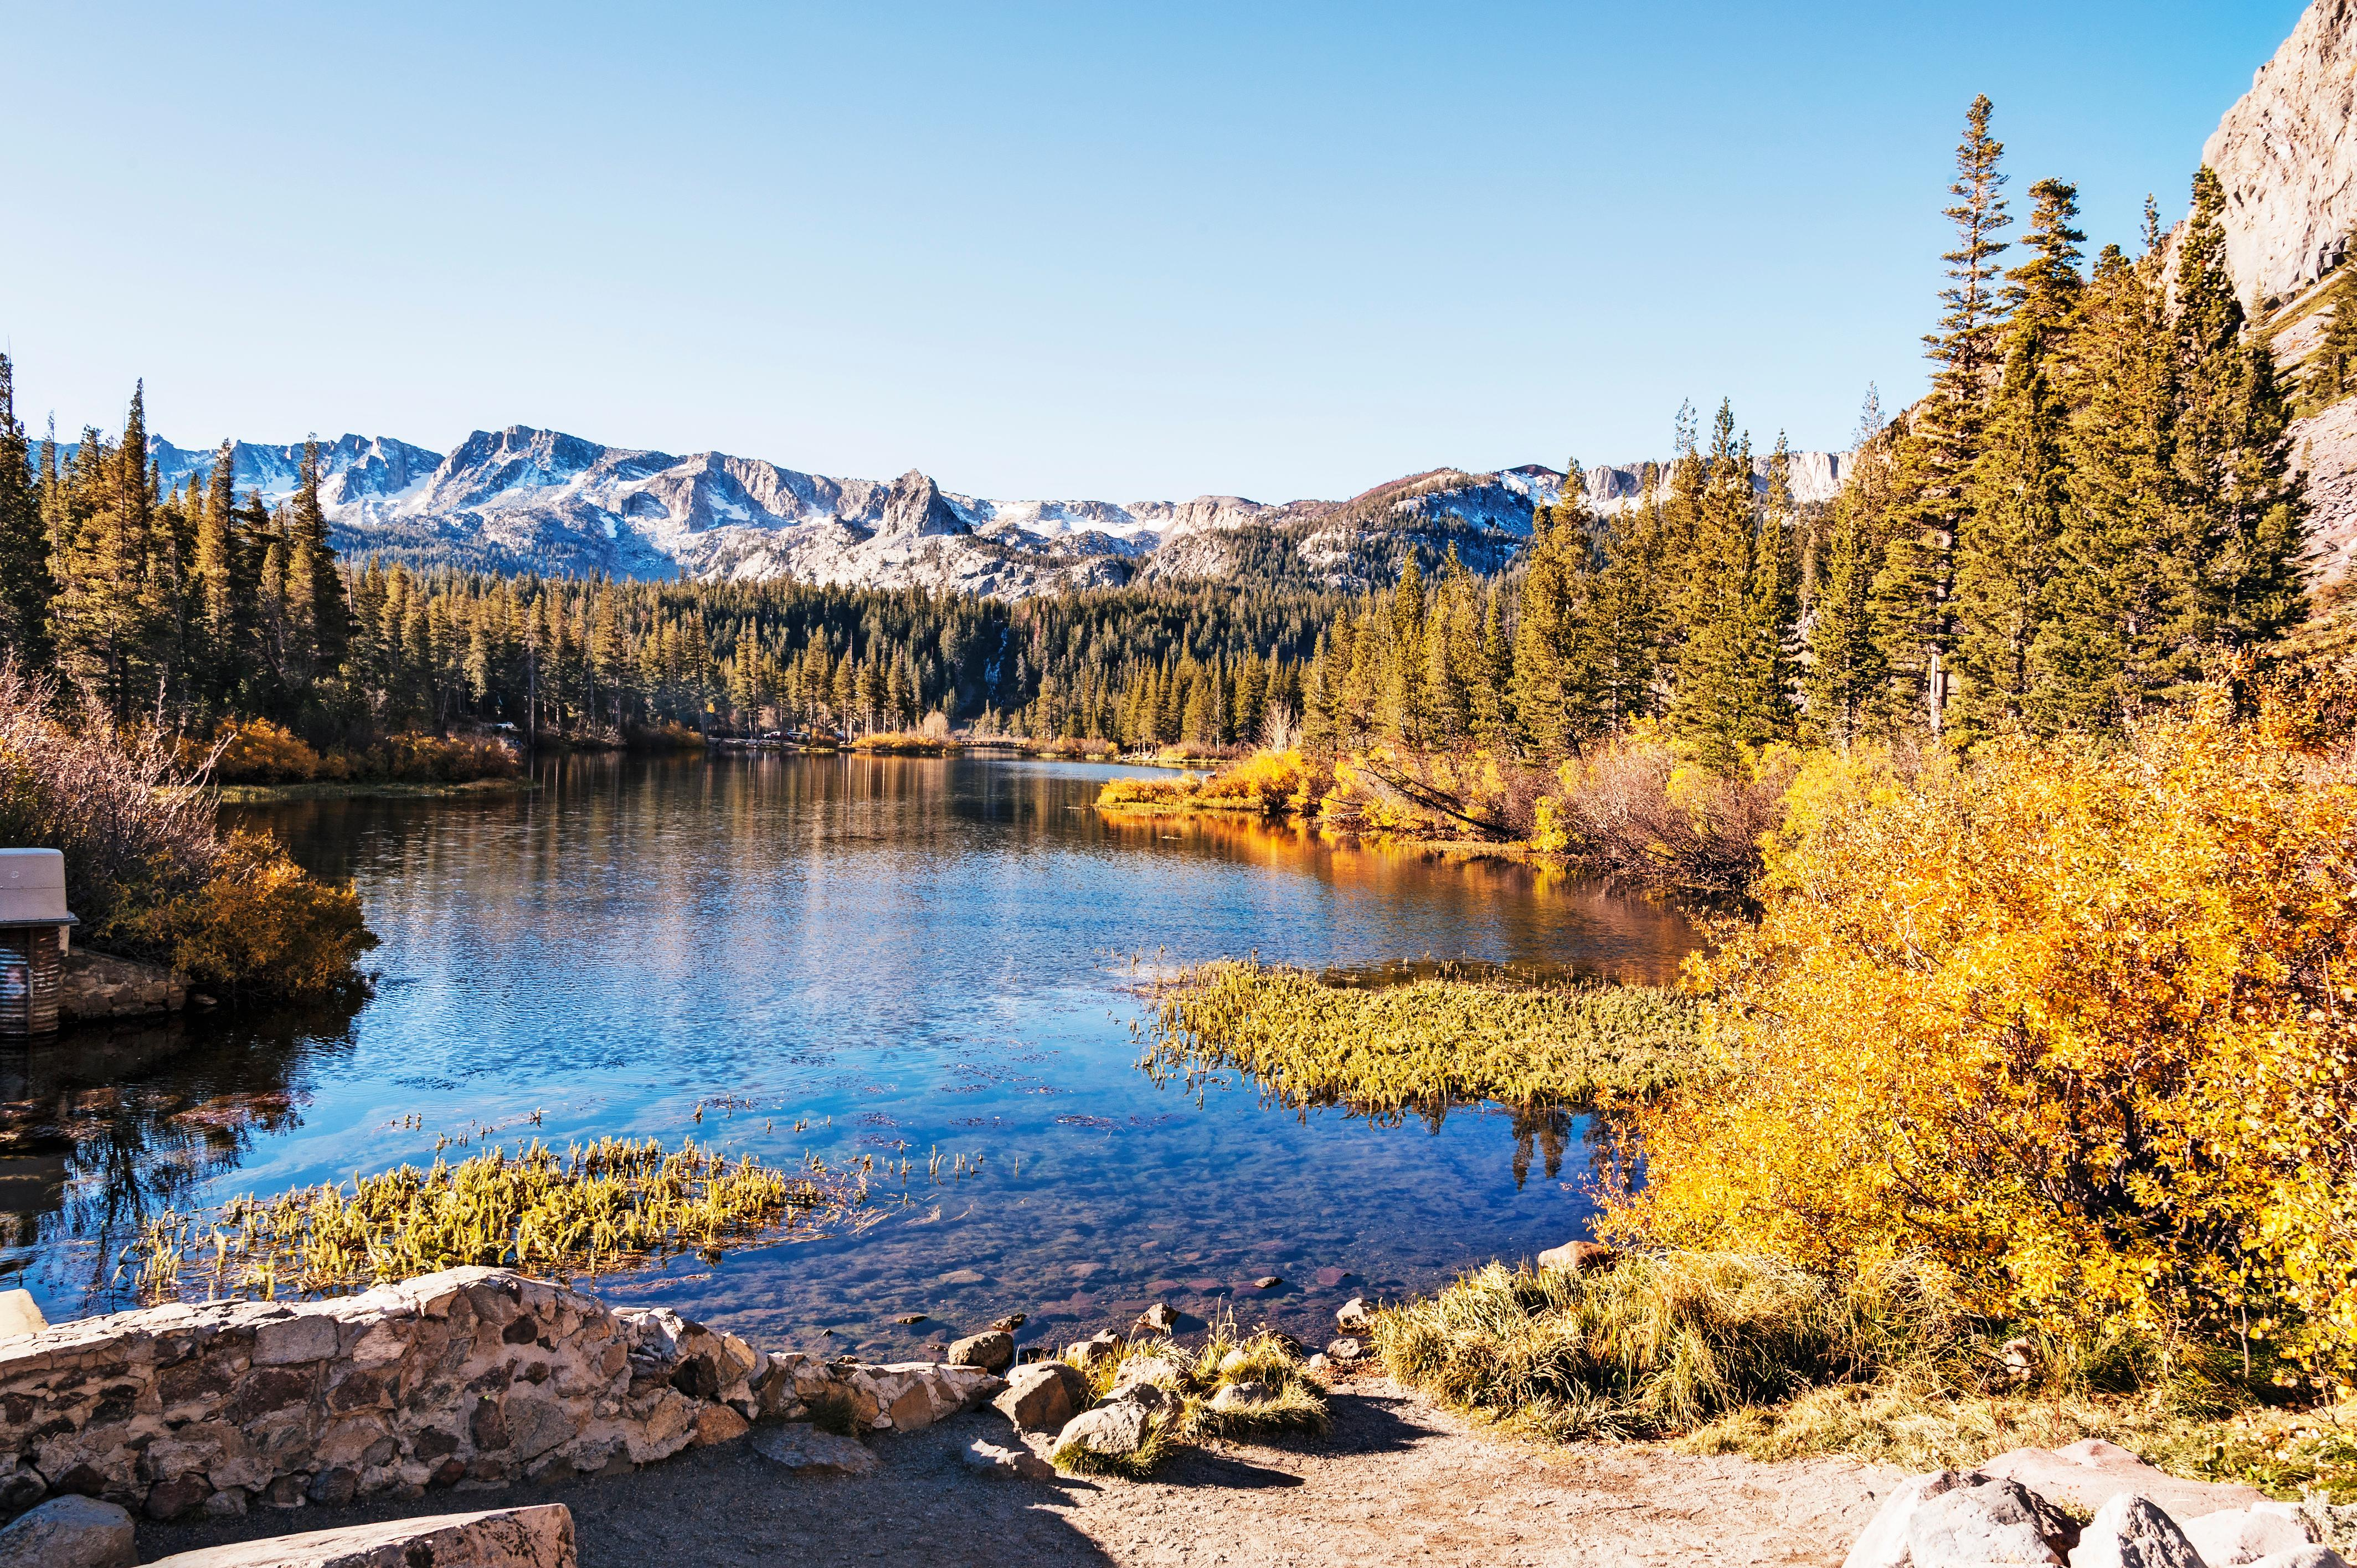 Hike to gorgeous vantage points in the Mammoth Lakes area.